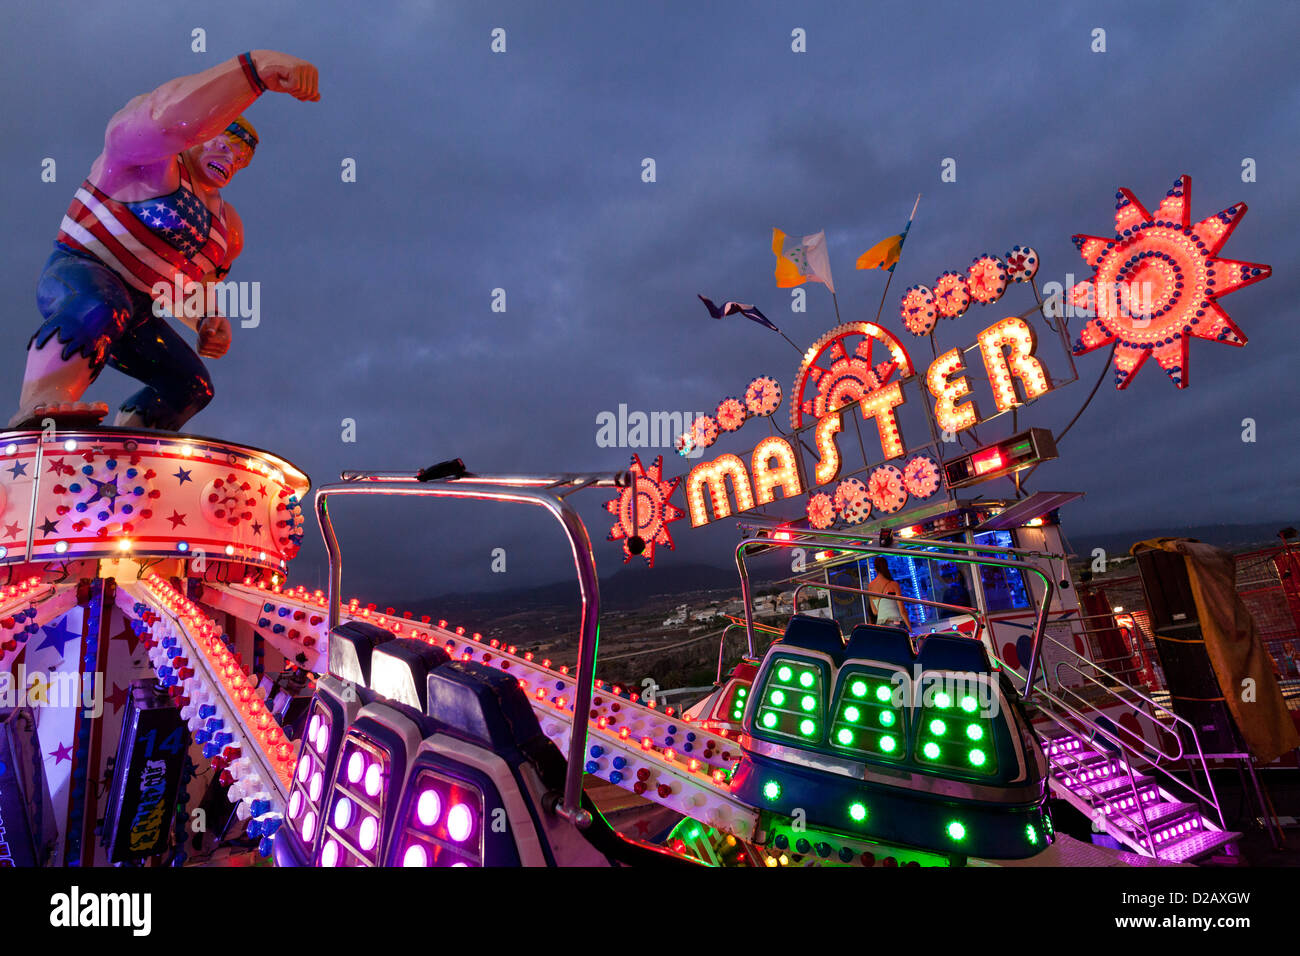 fairground-ride-at-night-at-san-juan-fie